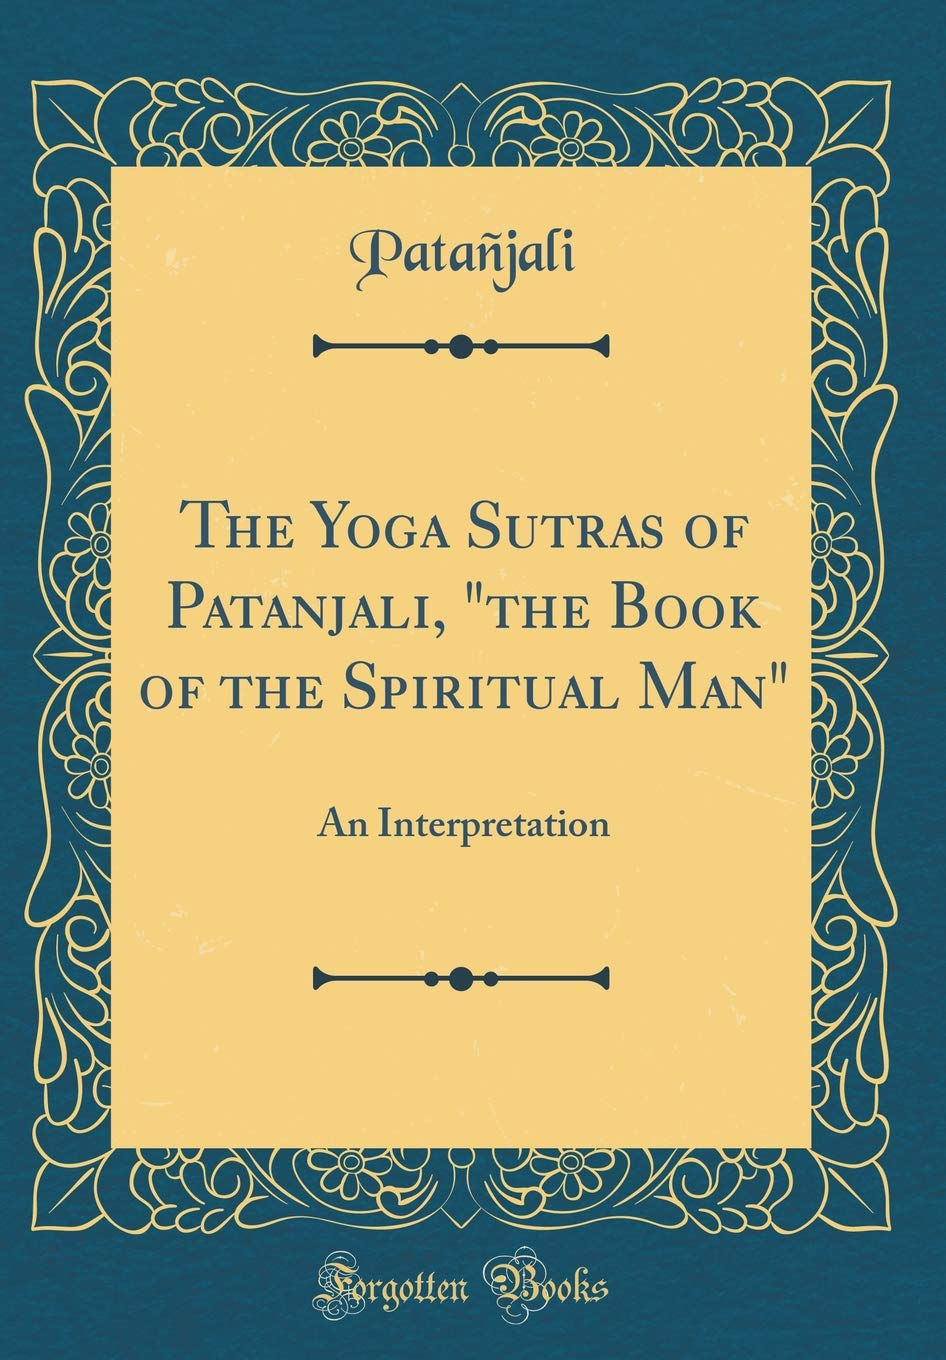 The Yoga Sutras of Patanjali,